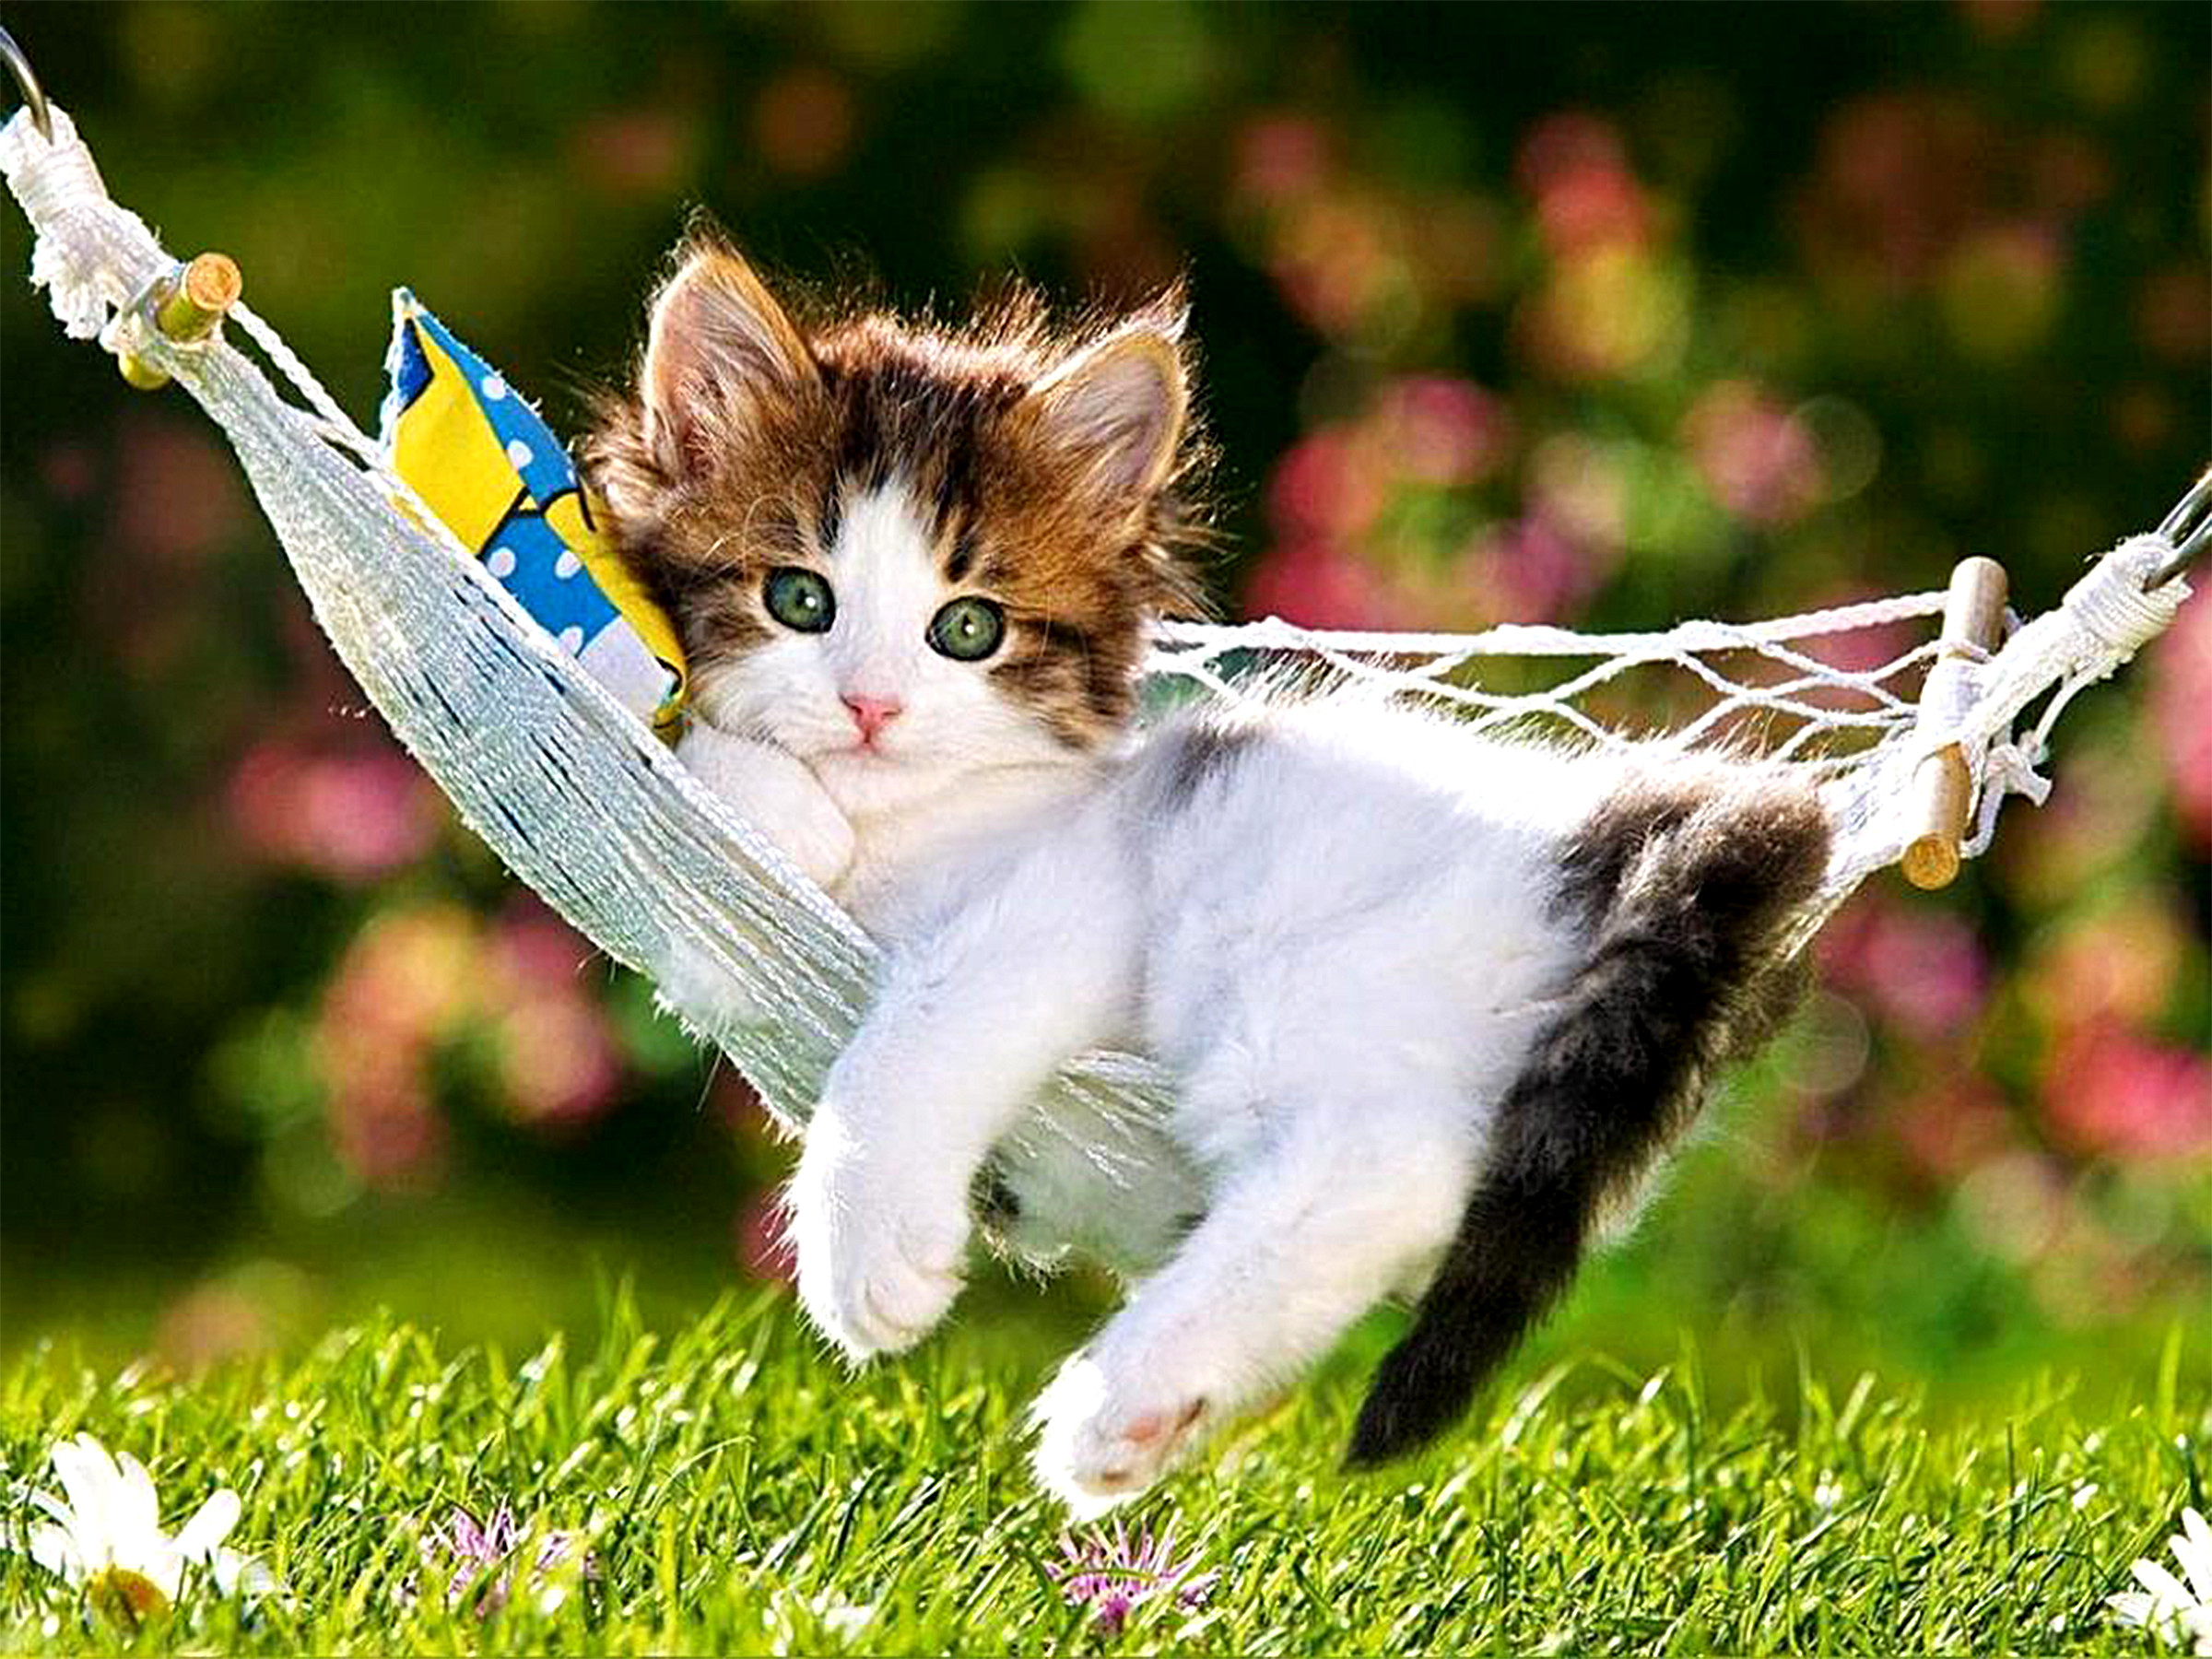 Cute kitten wallpaper 64 images 2400x1800 animal cat animal grass hammock cute kitten wallpaper thecheapjerseys Gallery